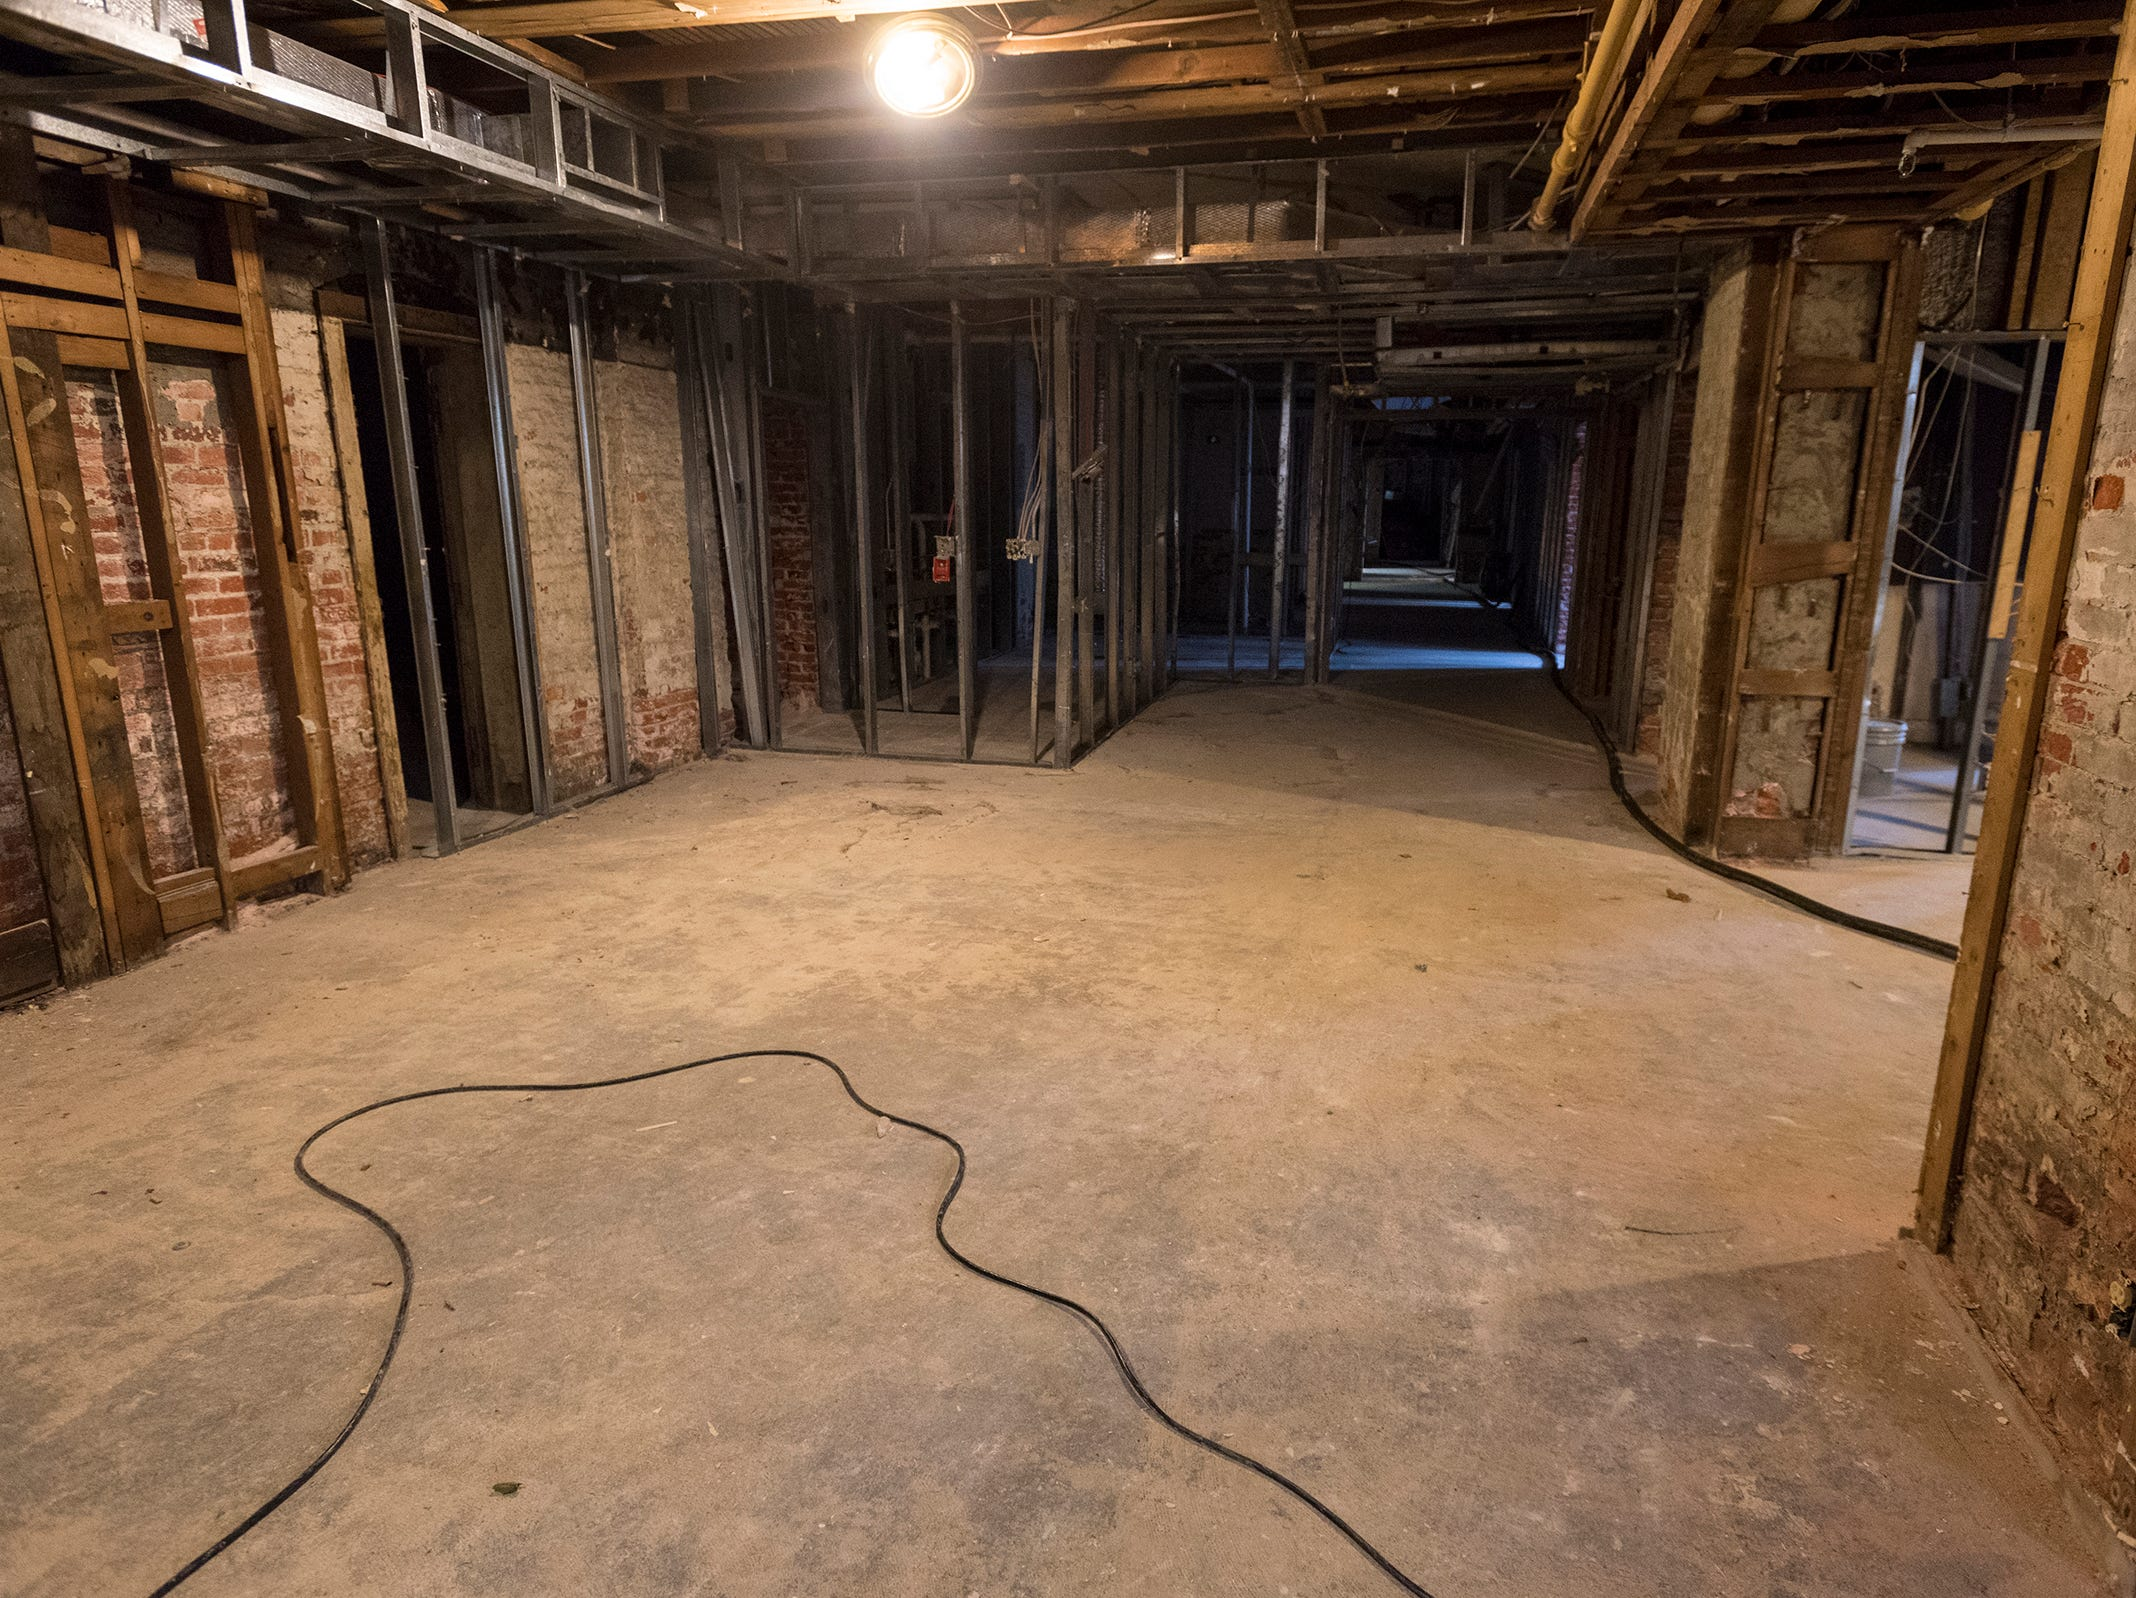 After removing drywall, developers have uncovered the building's brick walls. Developers plan to leave as much of it uncovered in the public spaces in the basement as they can.